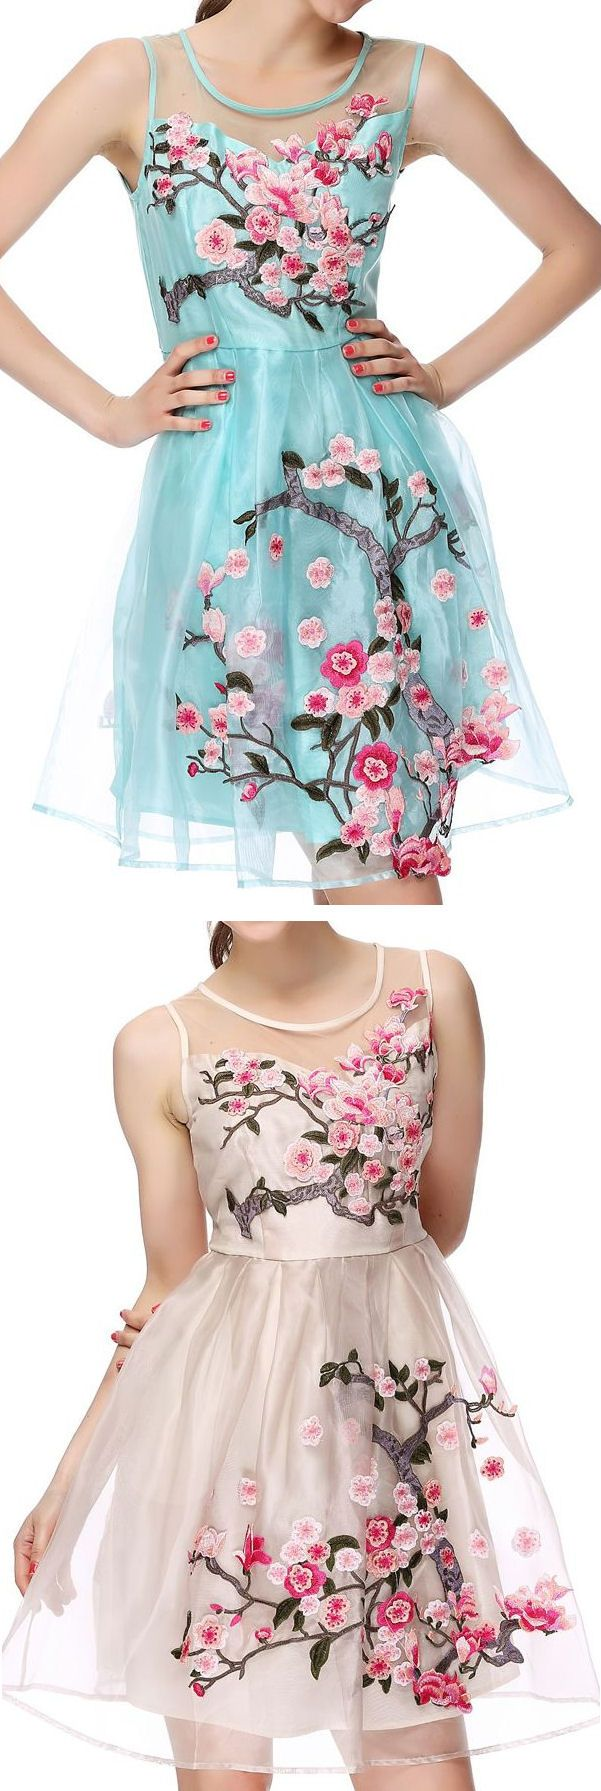 Floral Prom Dress